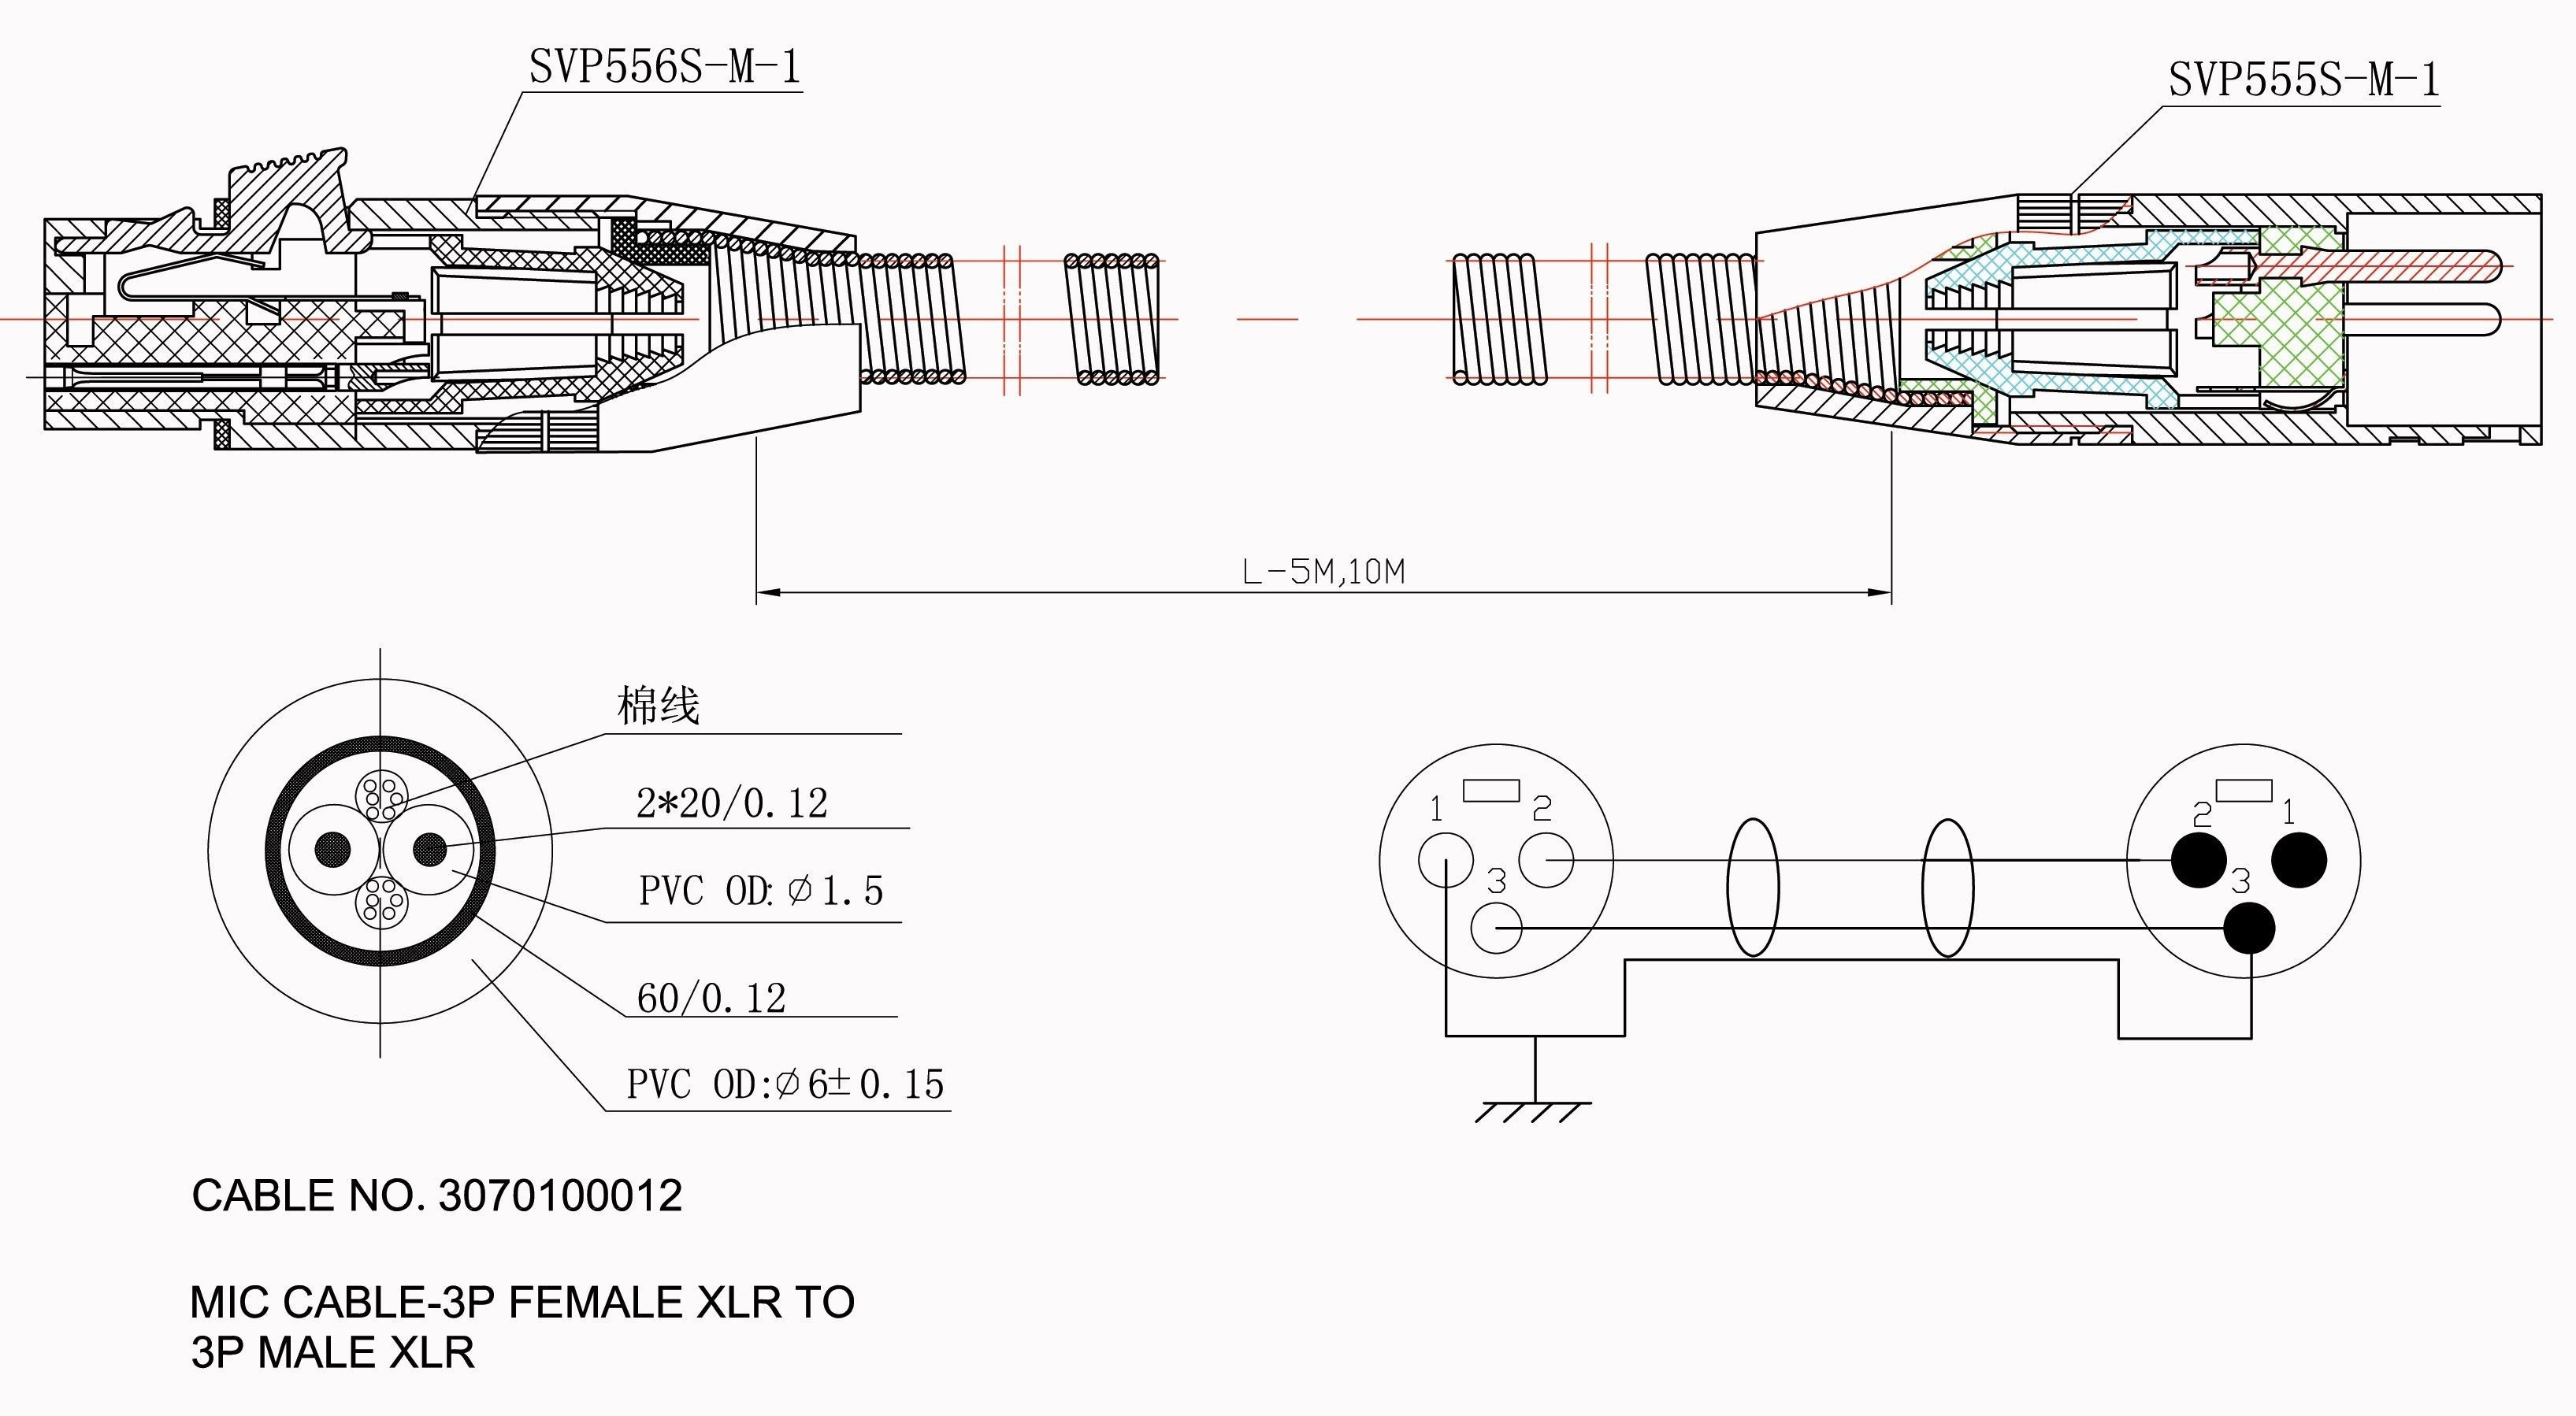 2004 Chevy Tail Light Electrical Diagram Elegant Wiring Diagram for Apple Charger Diagrams Of 2004 Chevy Tail Light Electrical Diagram